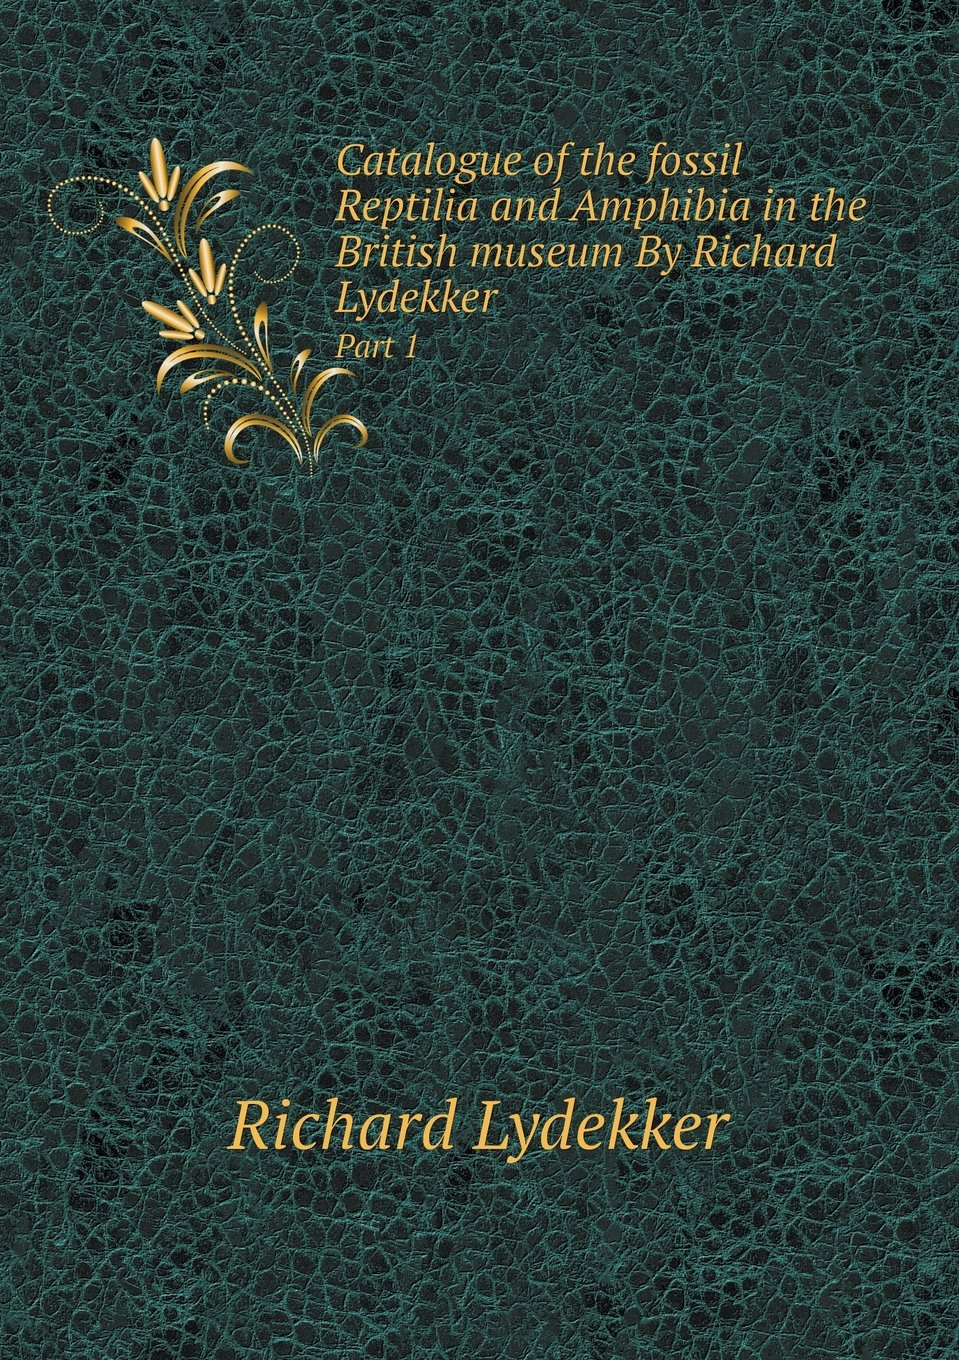 Catalogue of the fossil Reptilia and Amphibia in the British museum By Richard Lydekker Part 1 PDF